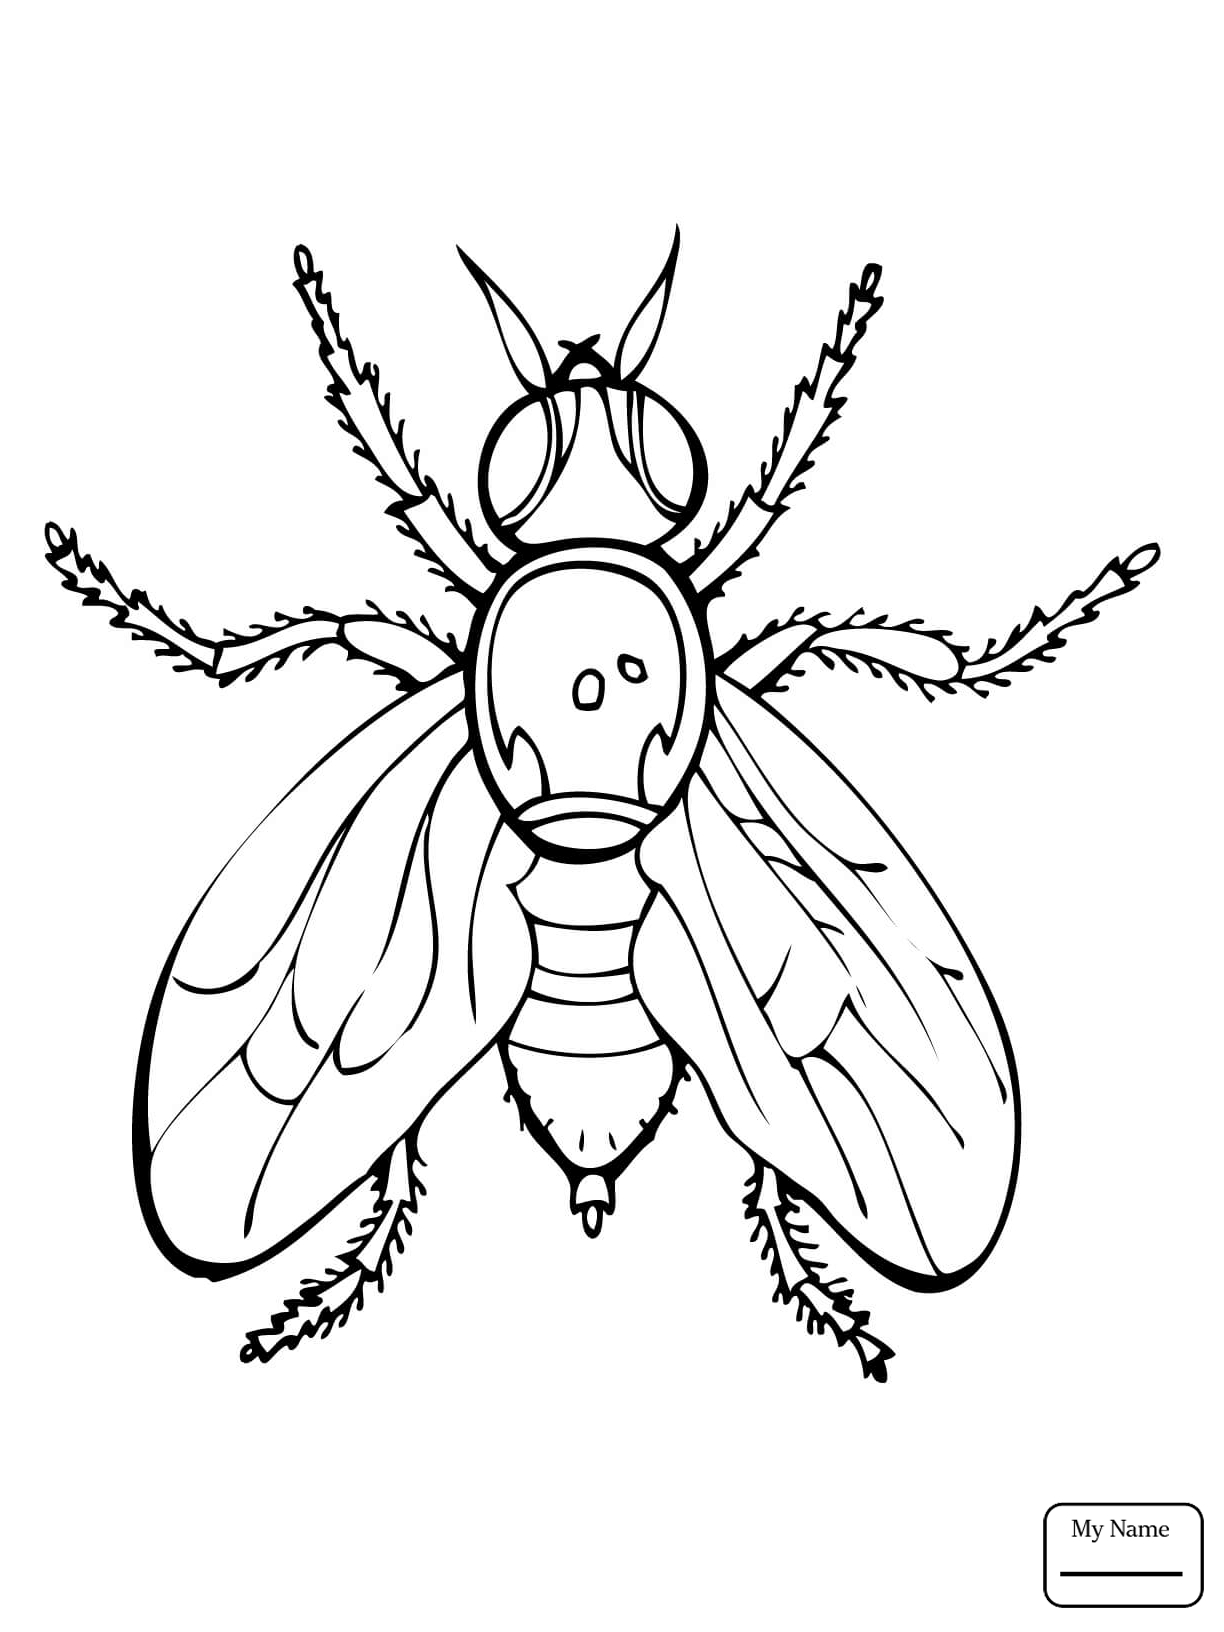 Firefly Insect Drawing at GetDrawings.com | Free for personal use ... for Firefly Drawing Scientific  45hul